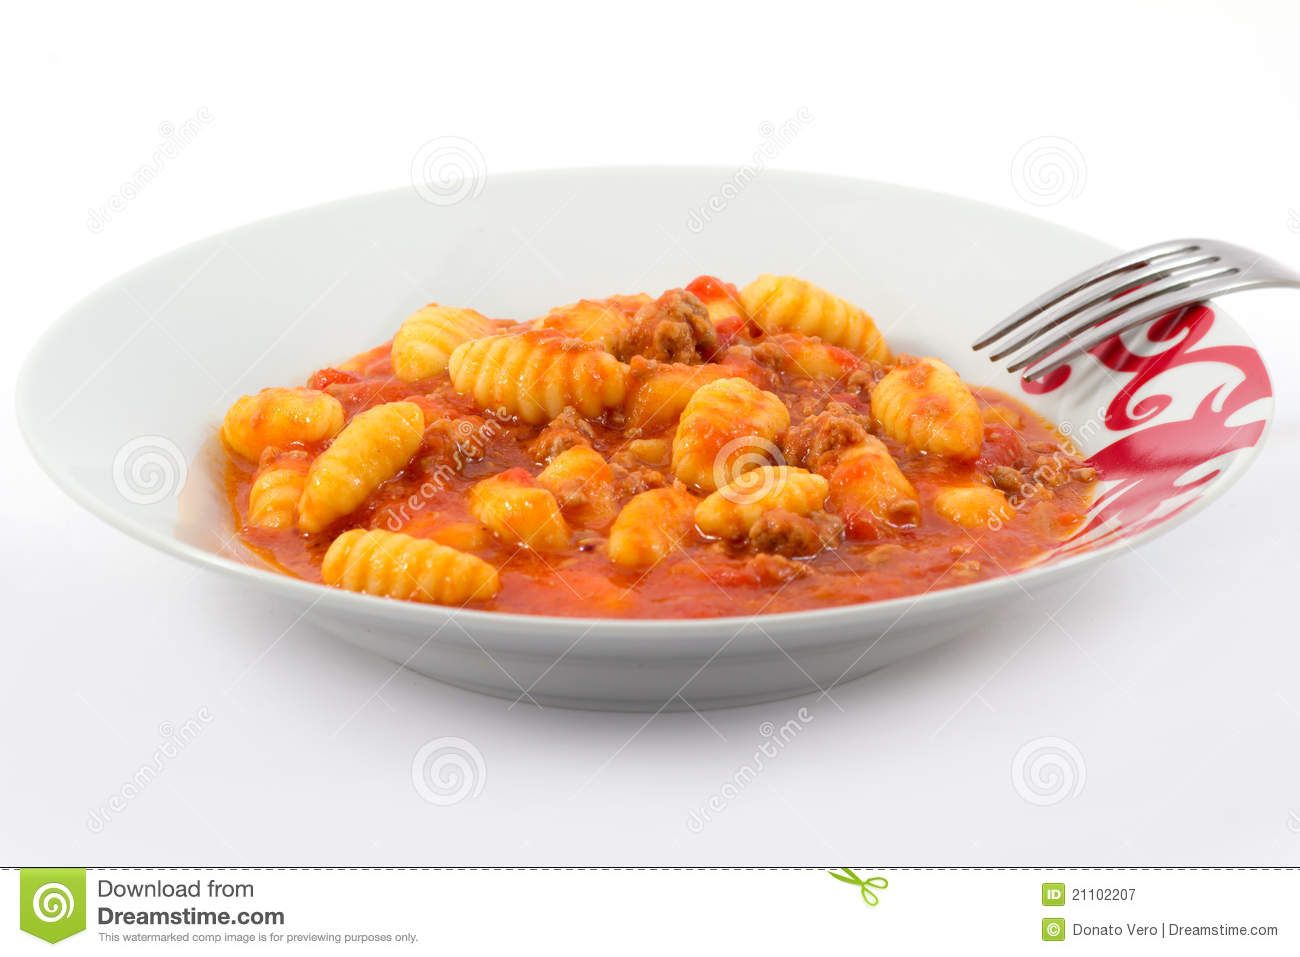 Potato gnocchi with tomato sauce with minced meat.